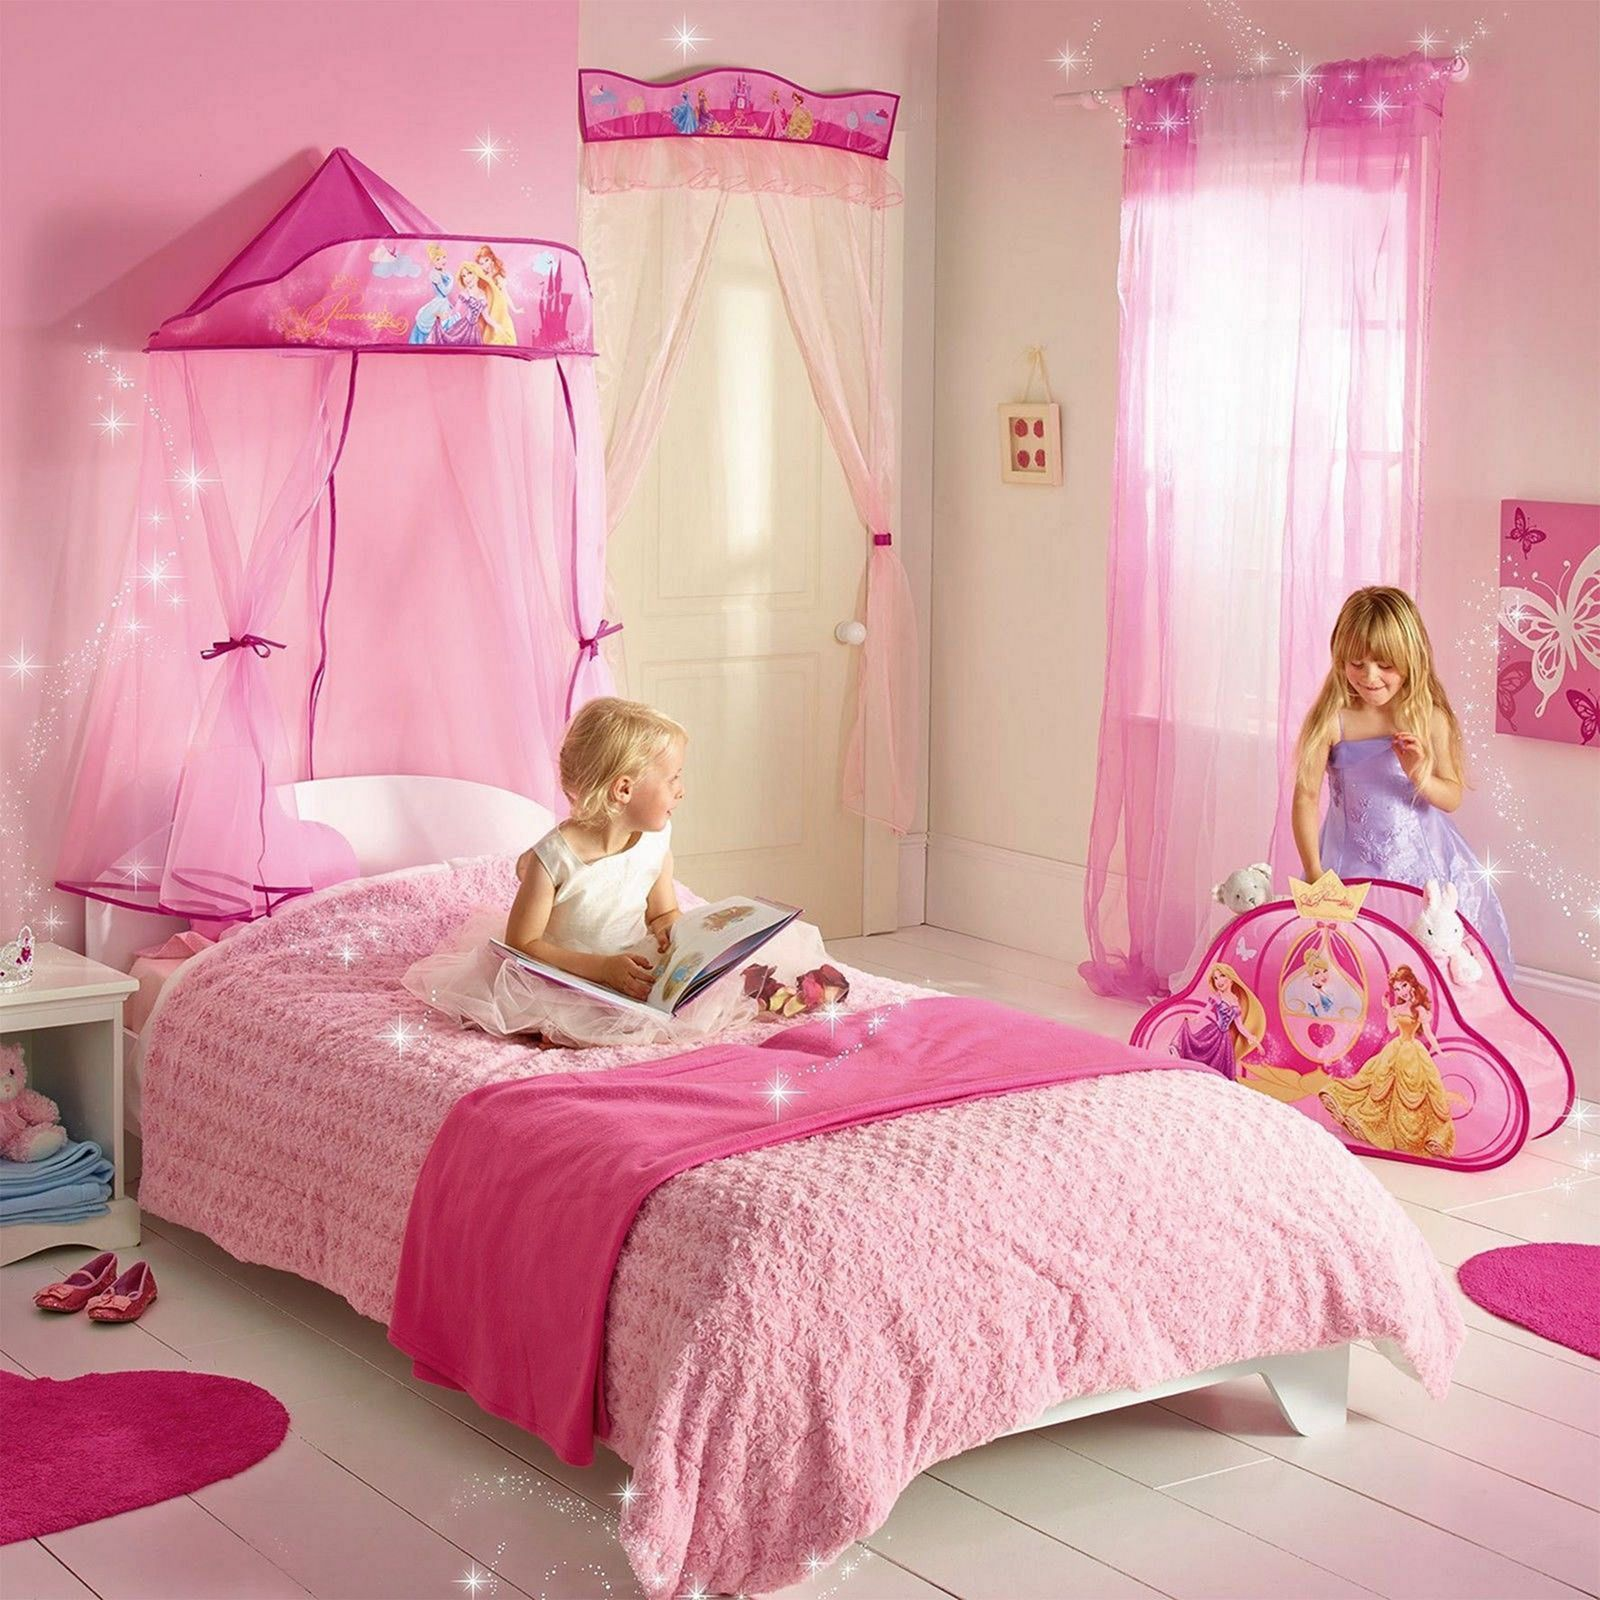 Sublime 12+ Beautiful Princess Bedroom Decorating Ideas For Your